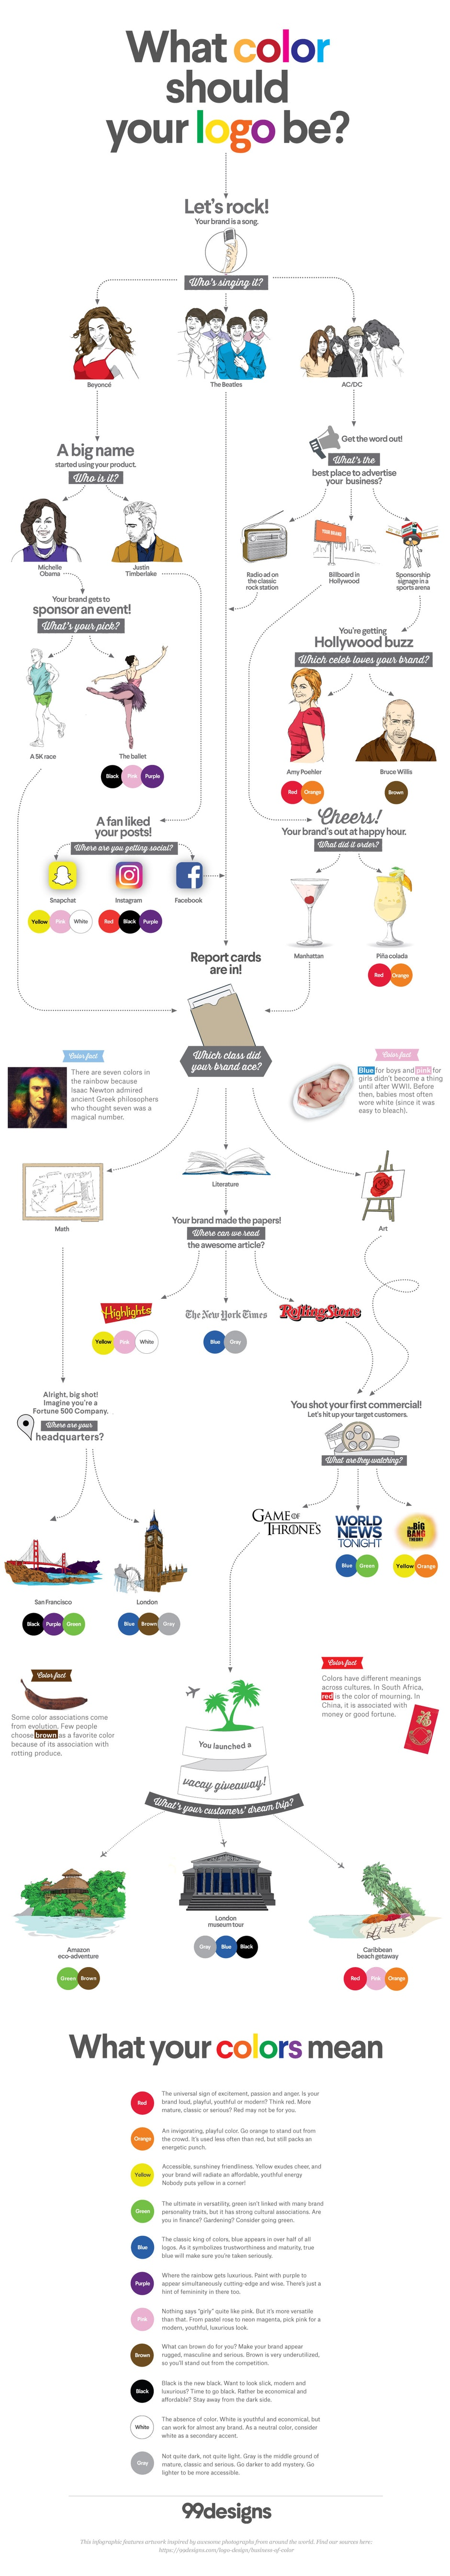 Do you understand the psychology of color in logo design 99designs logo color meanings infographic flow chart geenschuldenfo Image collections